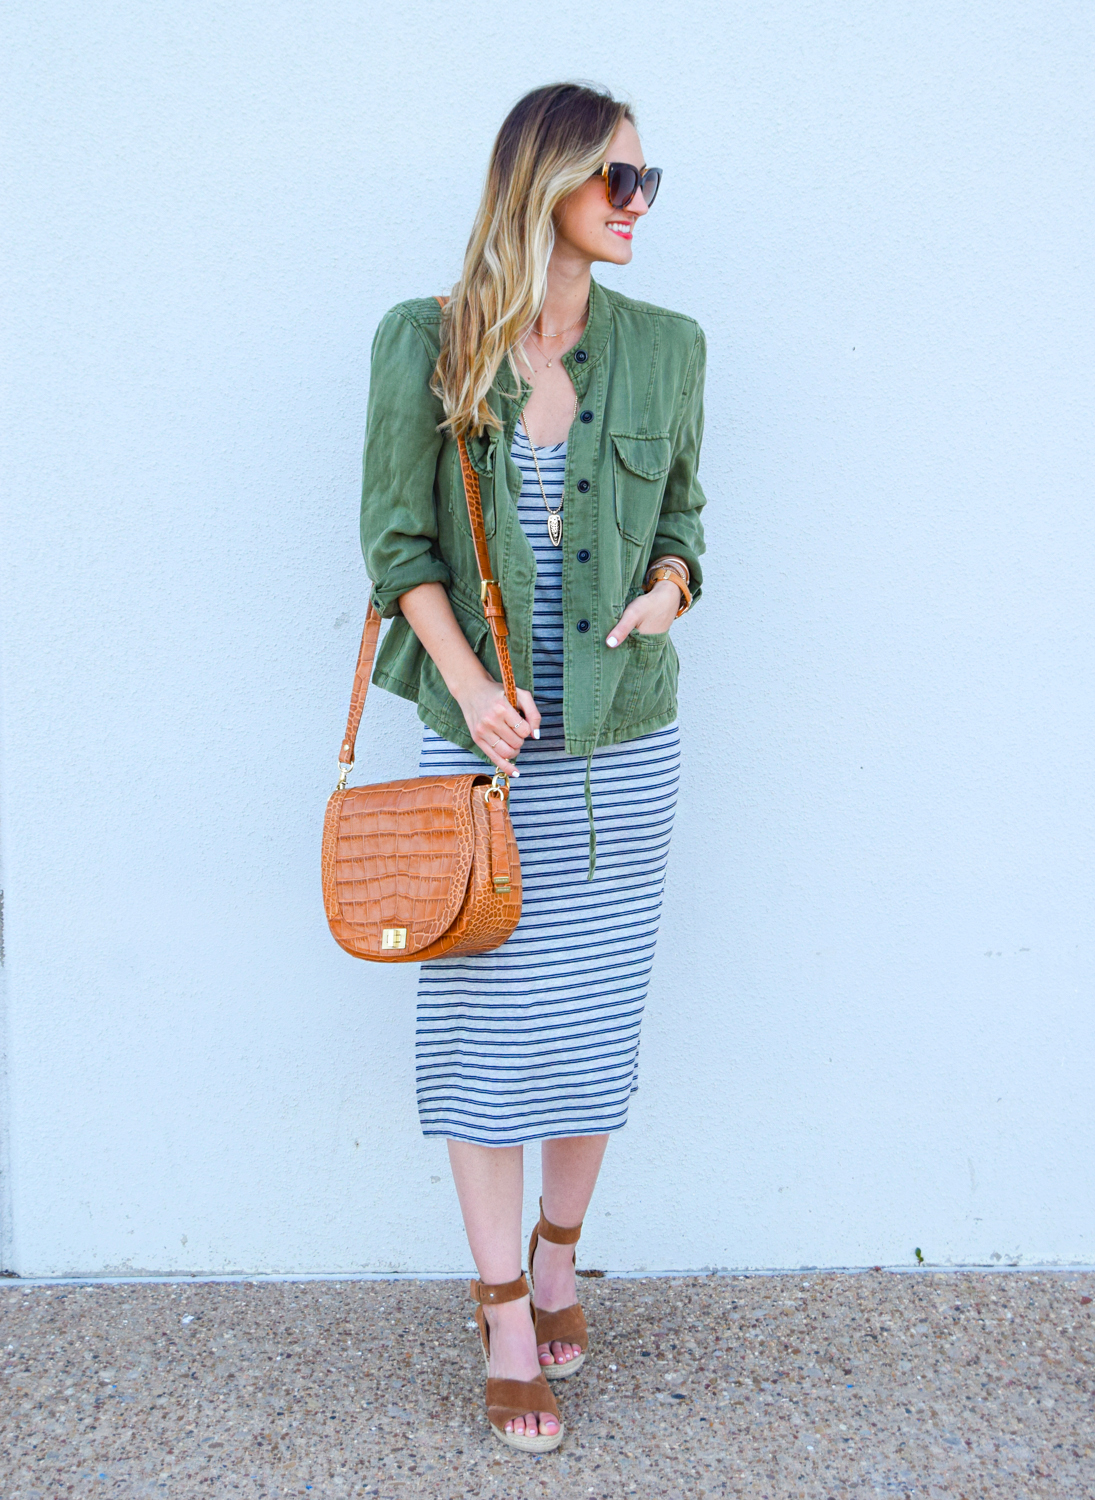 livvyland-blog-olivia-watson-austin-texas-fashion-blogger-striped-midi-dress-green-utility-jacket-brahmin-sonny-crossbody-handbag-prada-cat-eye-sunglasses-casual-outfit-4